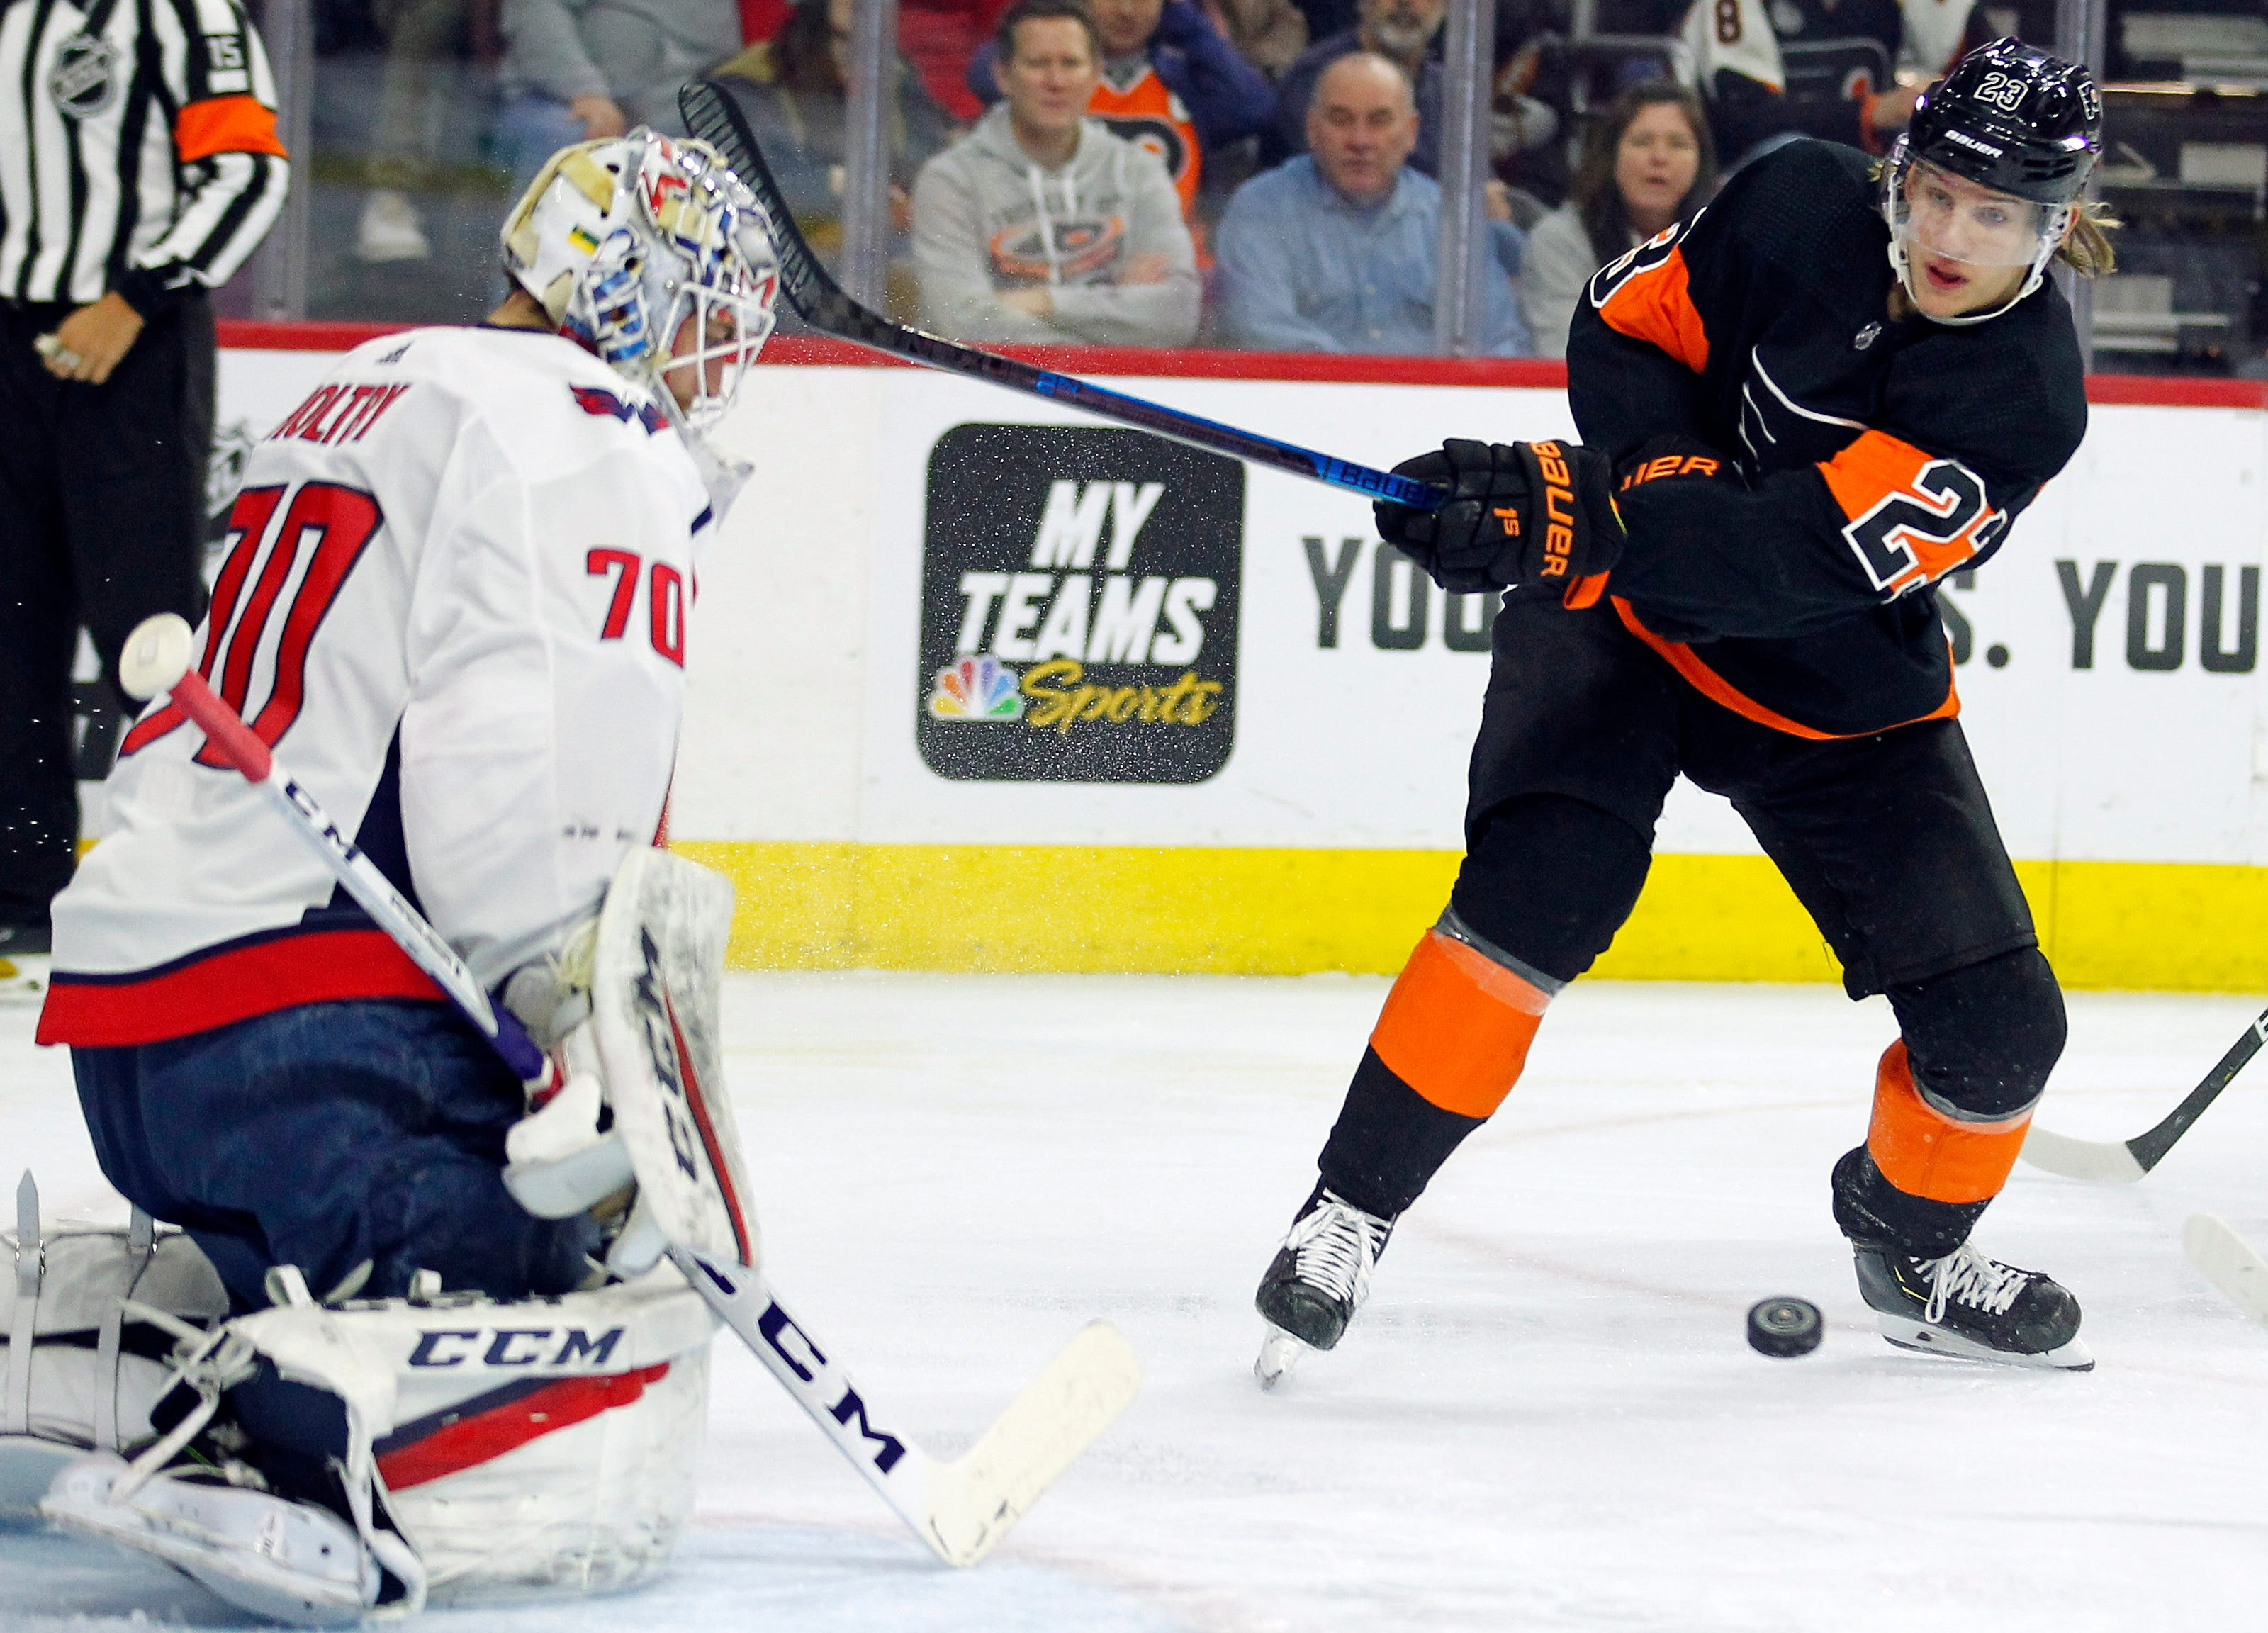 Ovechkin, Backstrom lead Capitals to 5-3 win over Flyers